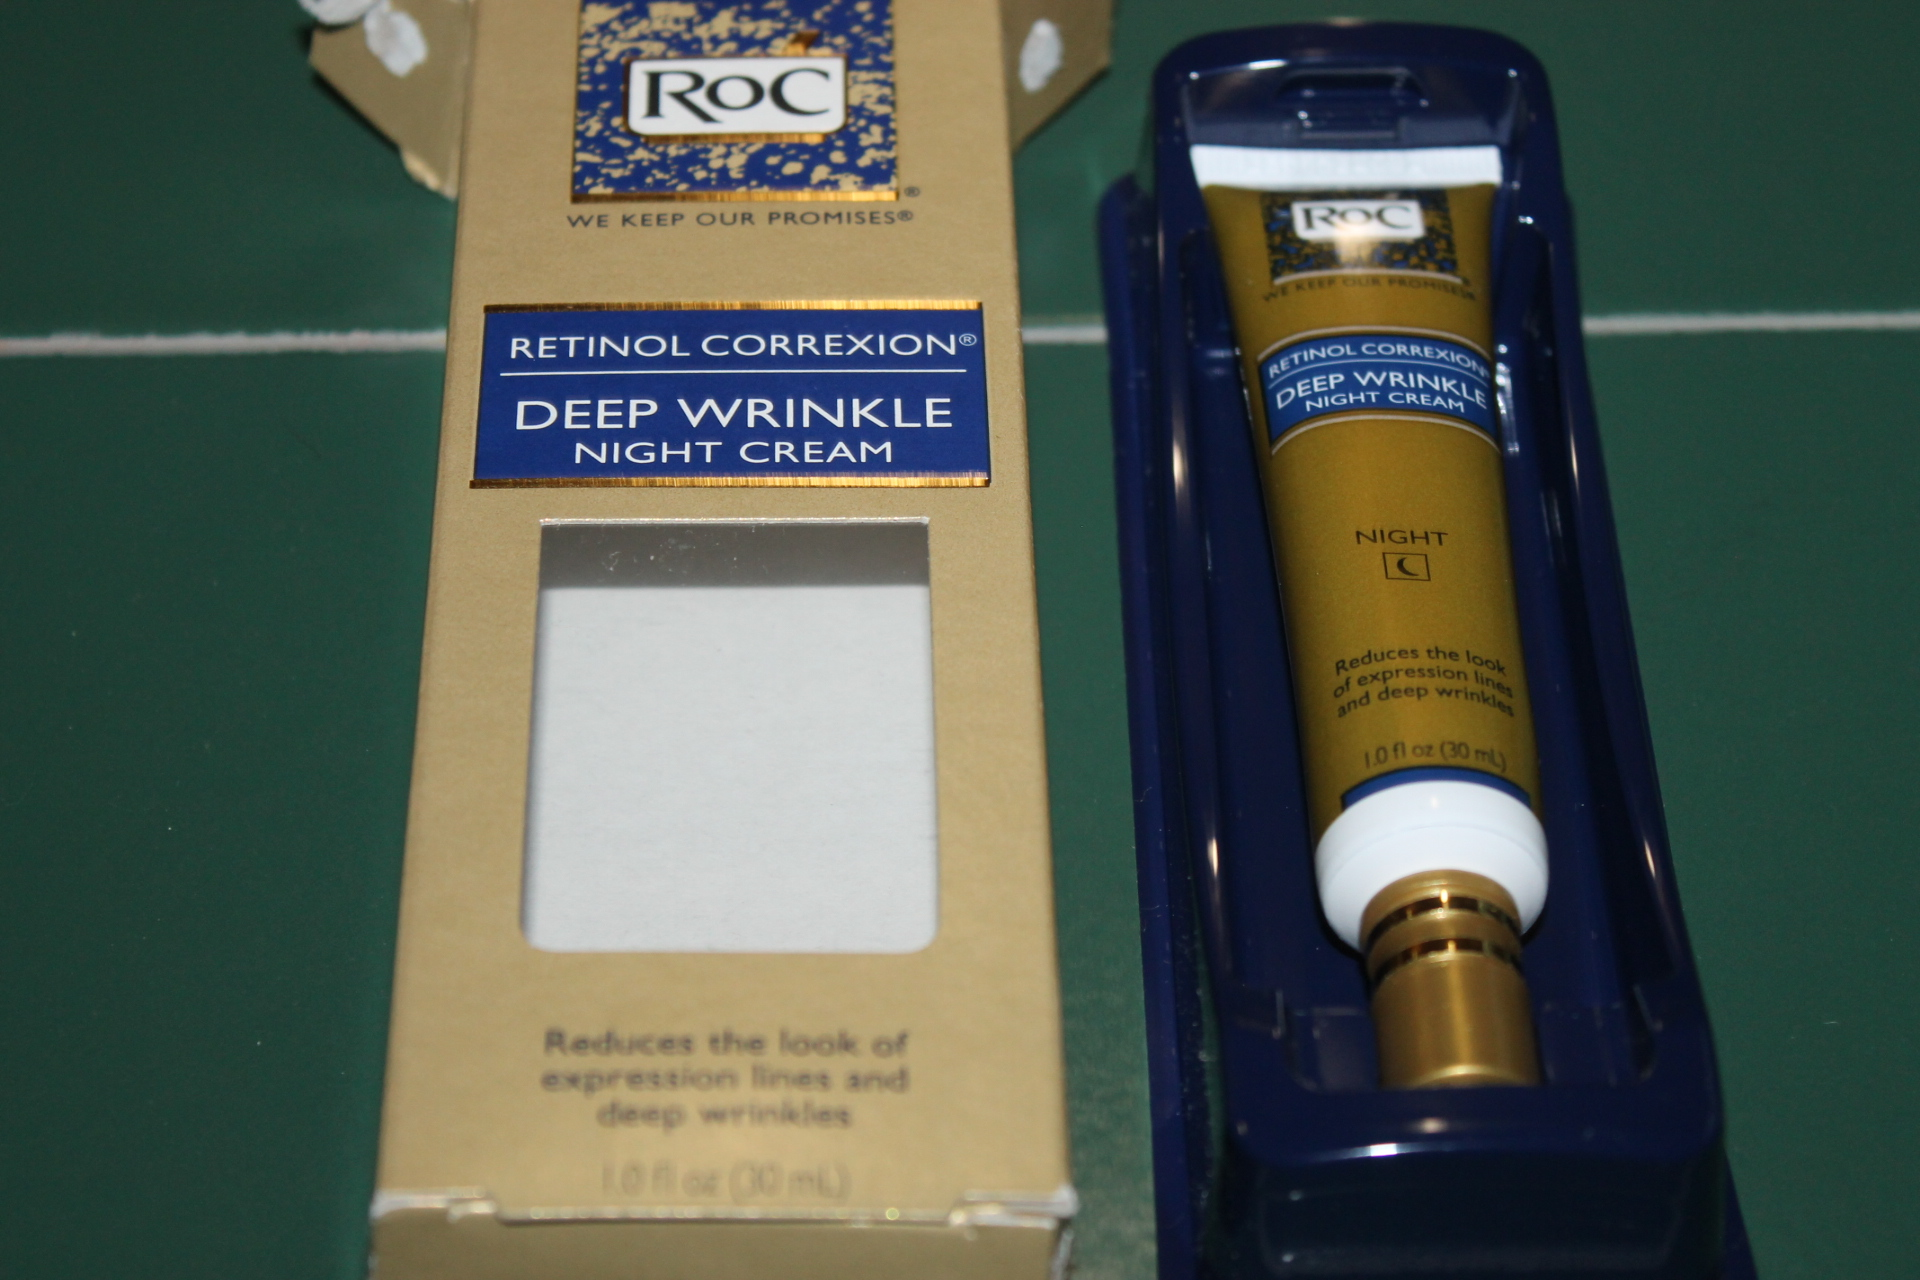 RoC® RETINOL CORREXION® Deep Wrinkle Night Cream #RoCRetinolResolution #IC (ad)